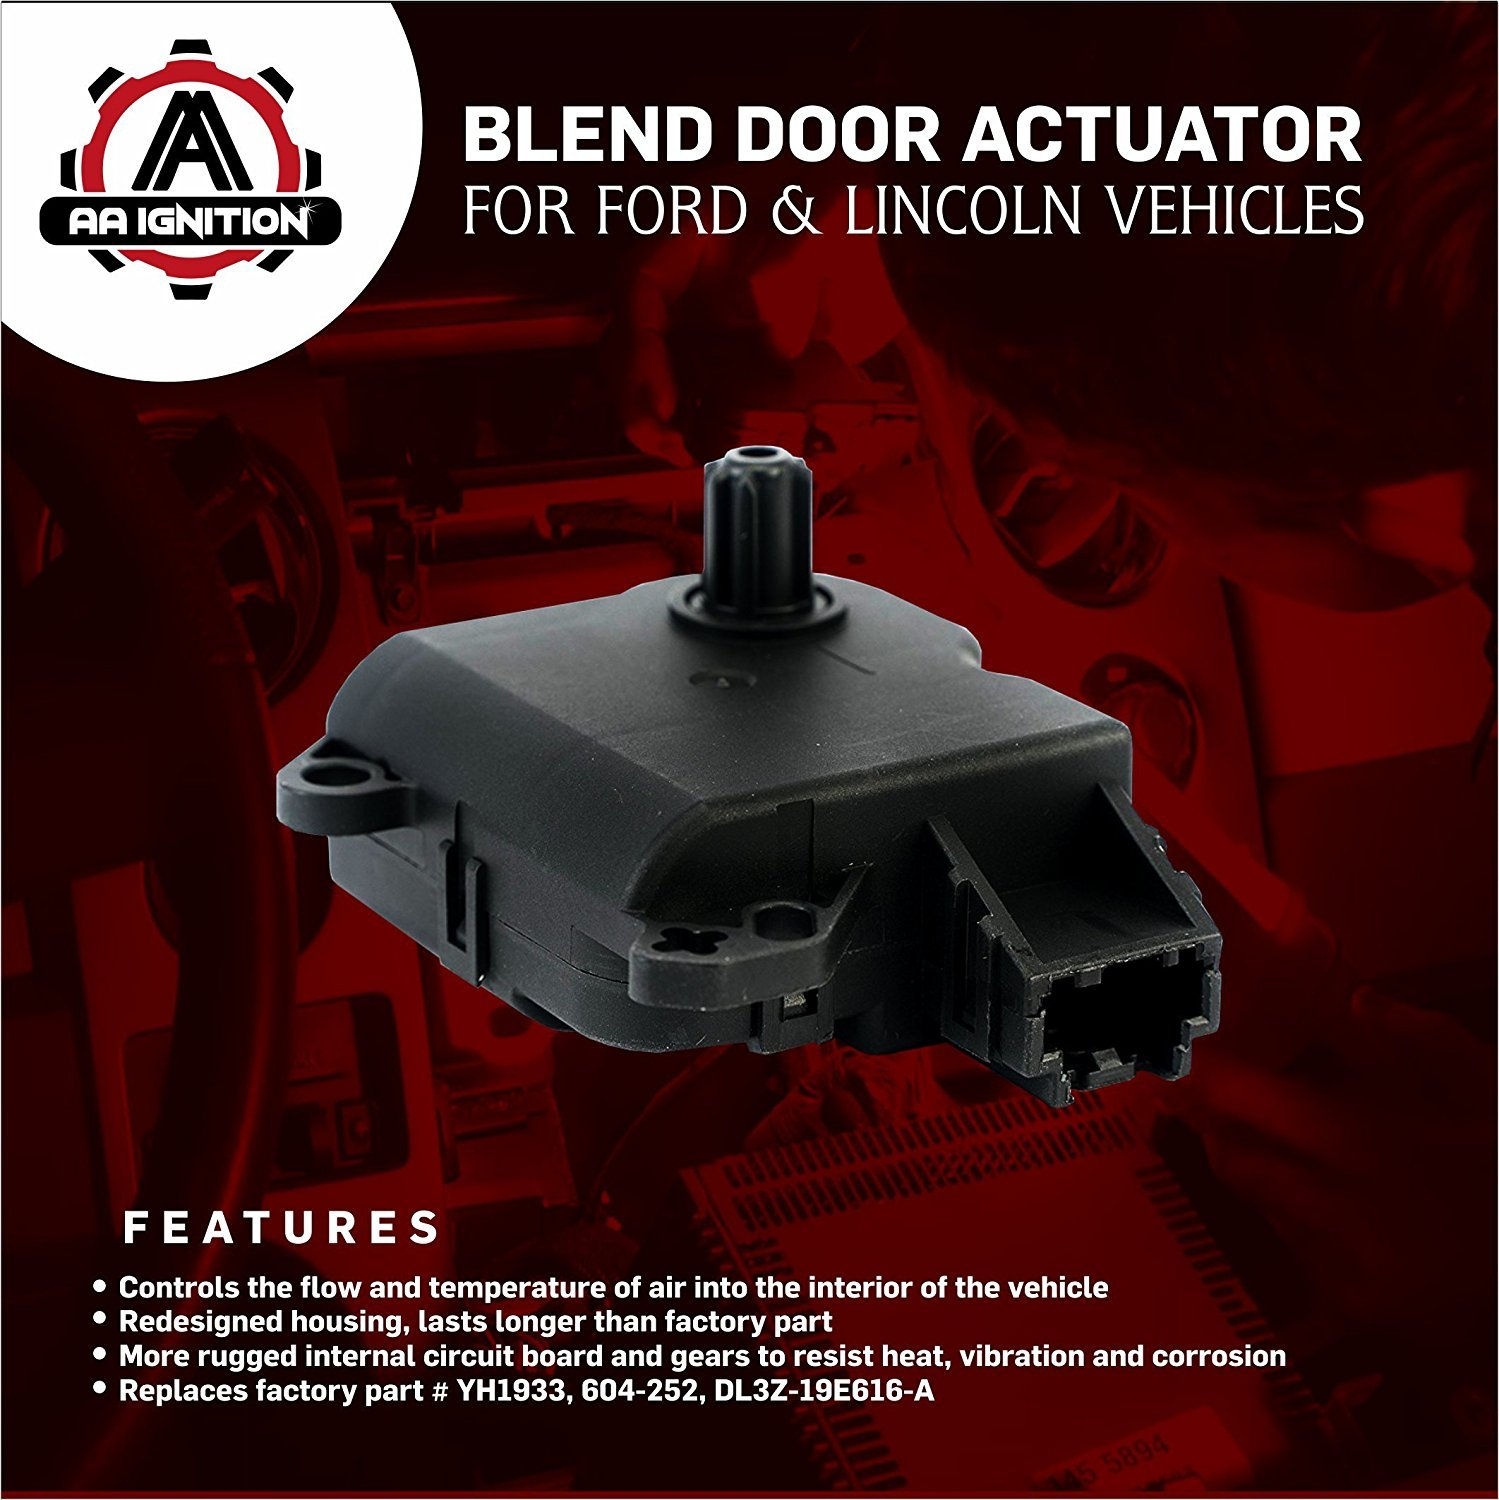 Heater Blend Door Actuator Replaces Yh1933 604 252 2009 Ford Flex Hvac Control Wiring Diagrams Dl3z 19e616 A Fits F150 2010 2011 2012 2013 2014